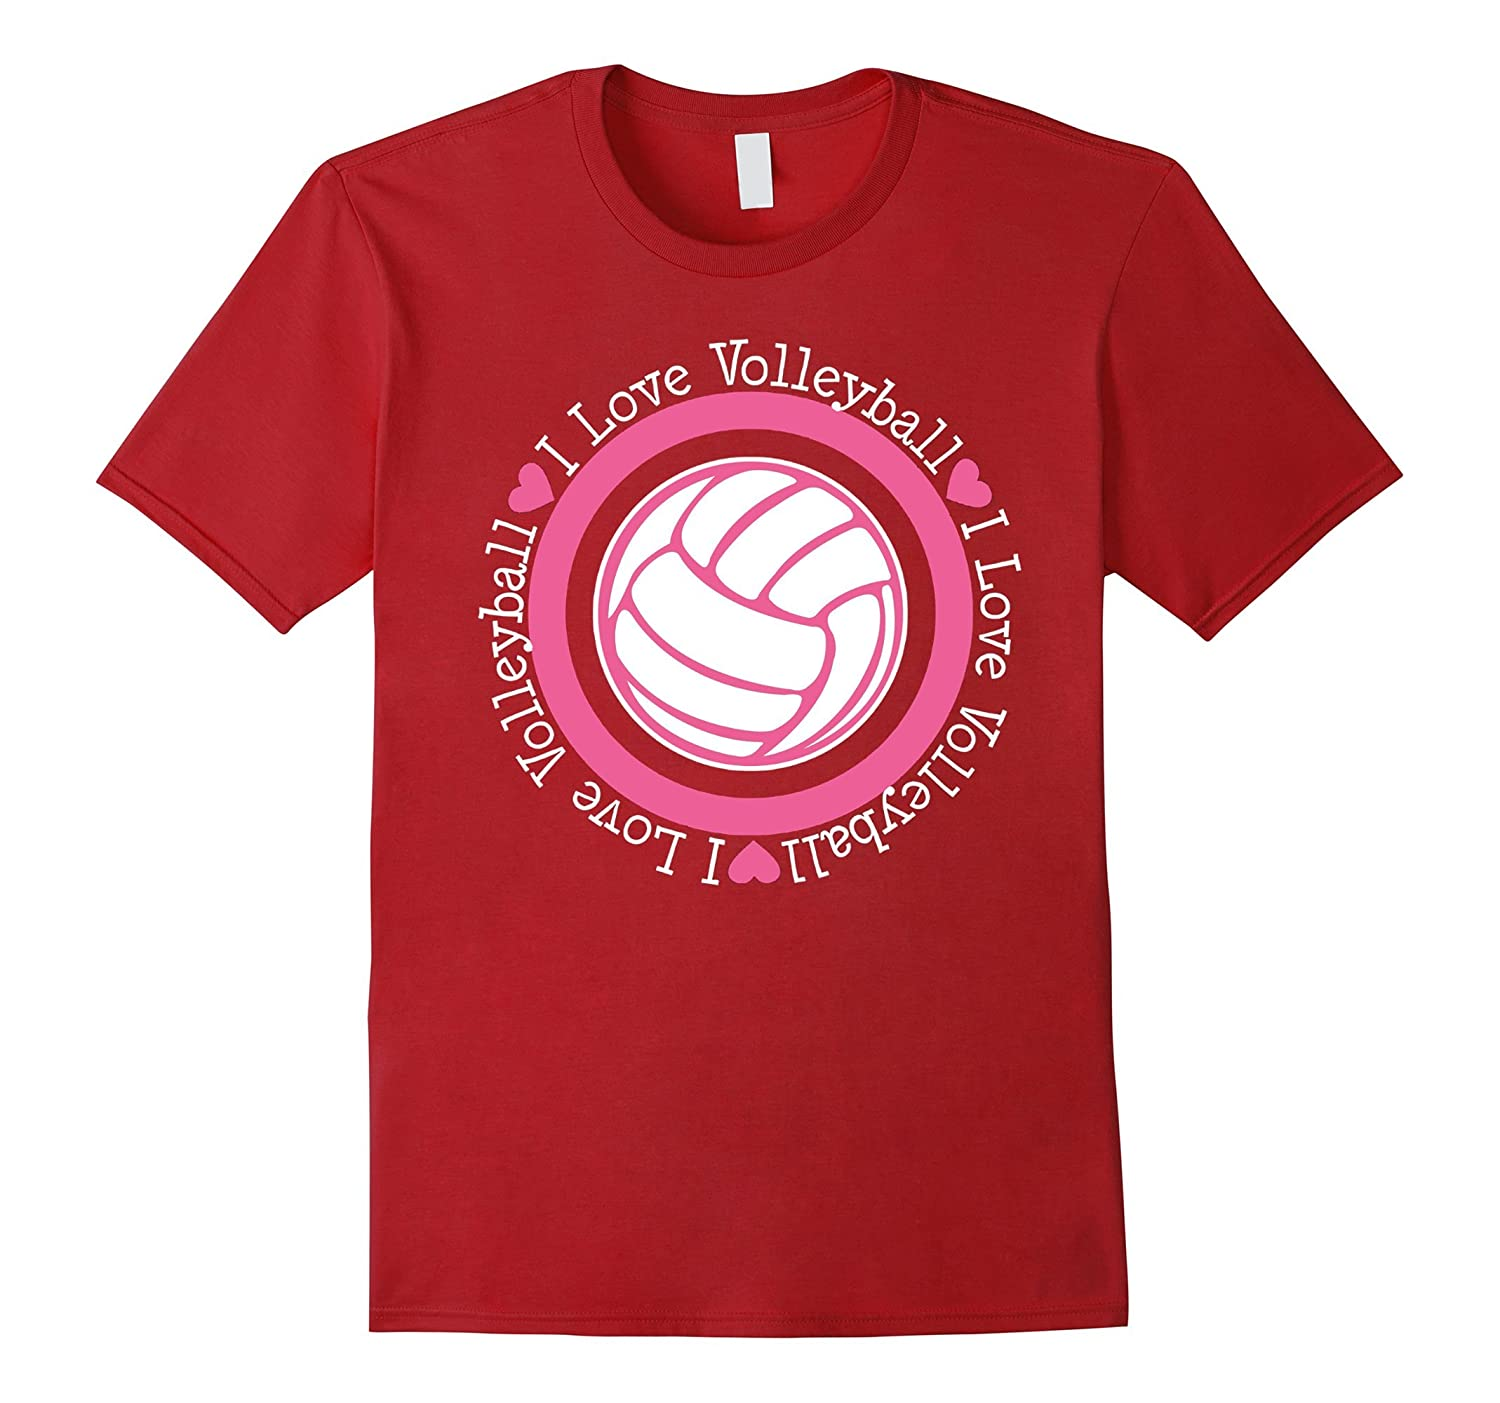 Volleyball t shirt - I Love Volleyball-CL